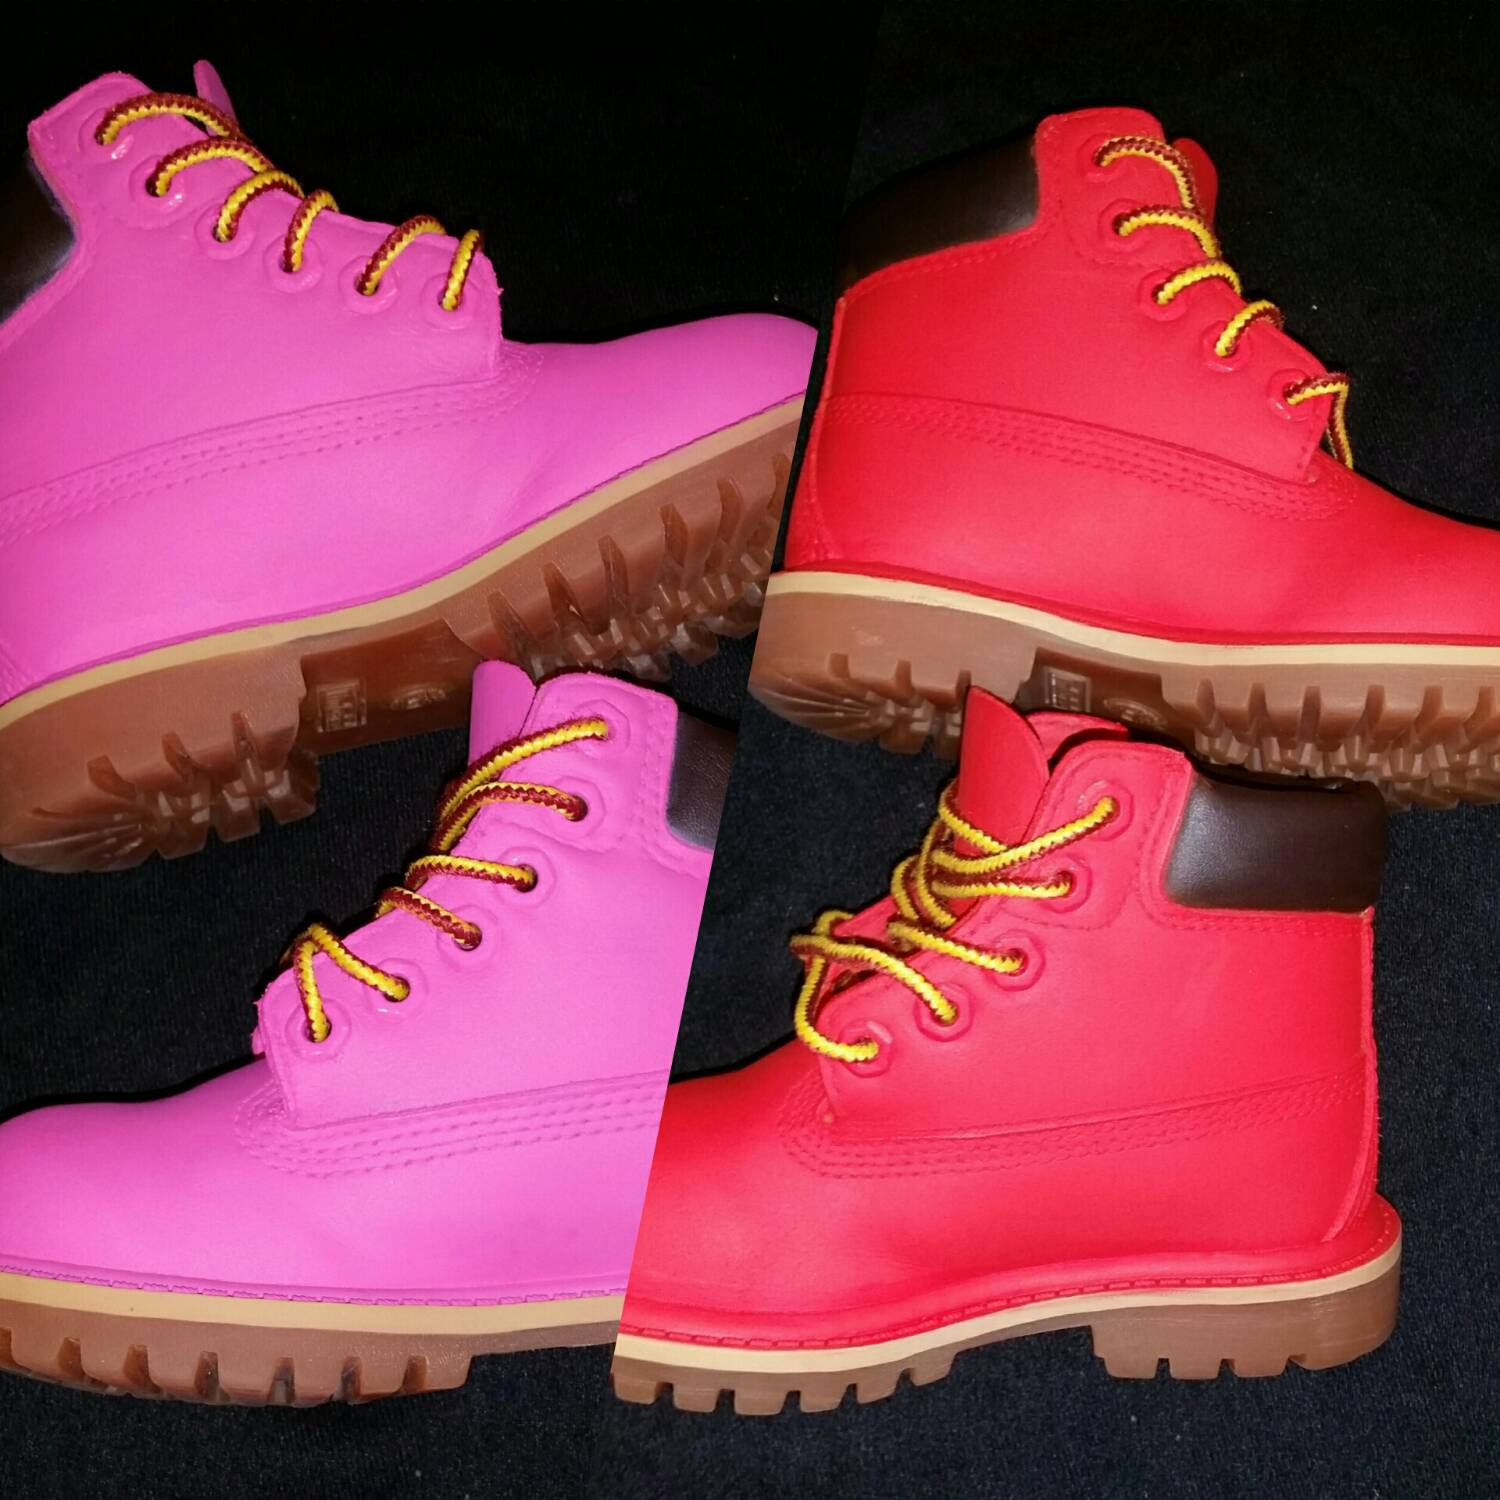 White and Gold Timberland Boots | Pink and White Timberlands | Colored Timberlands